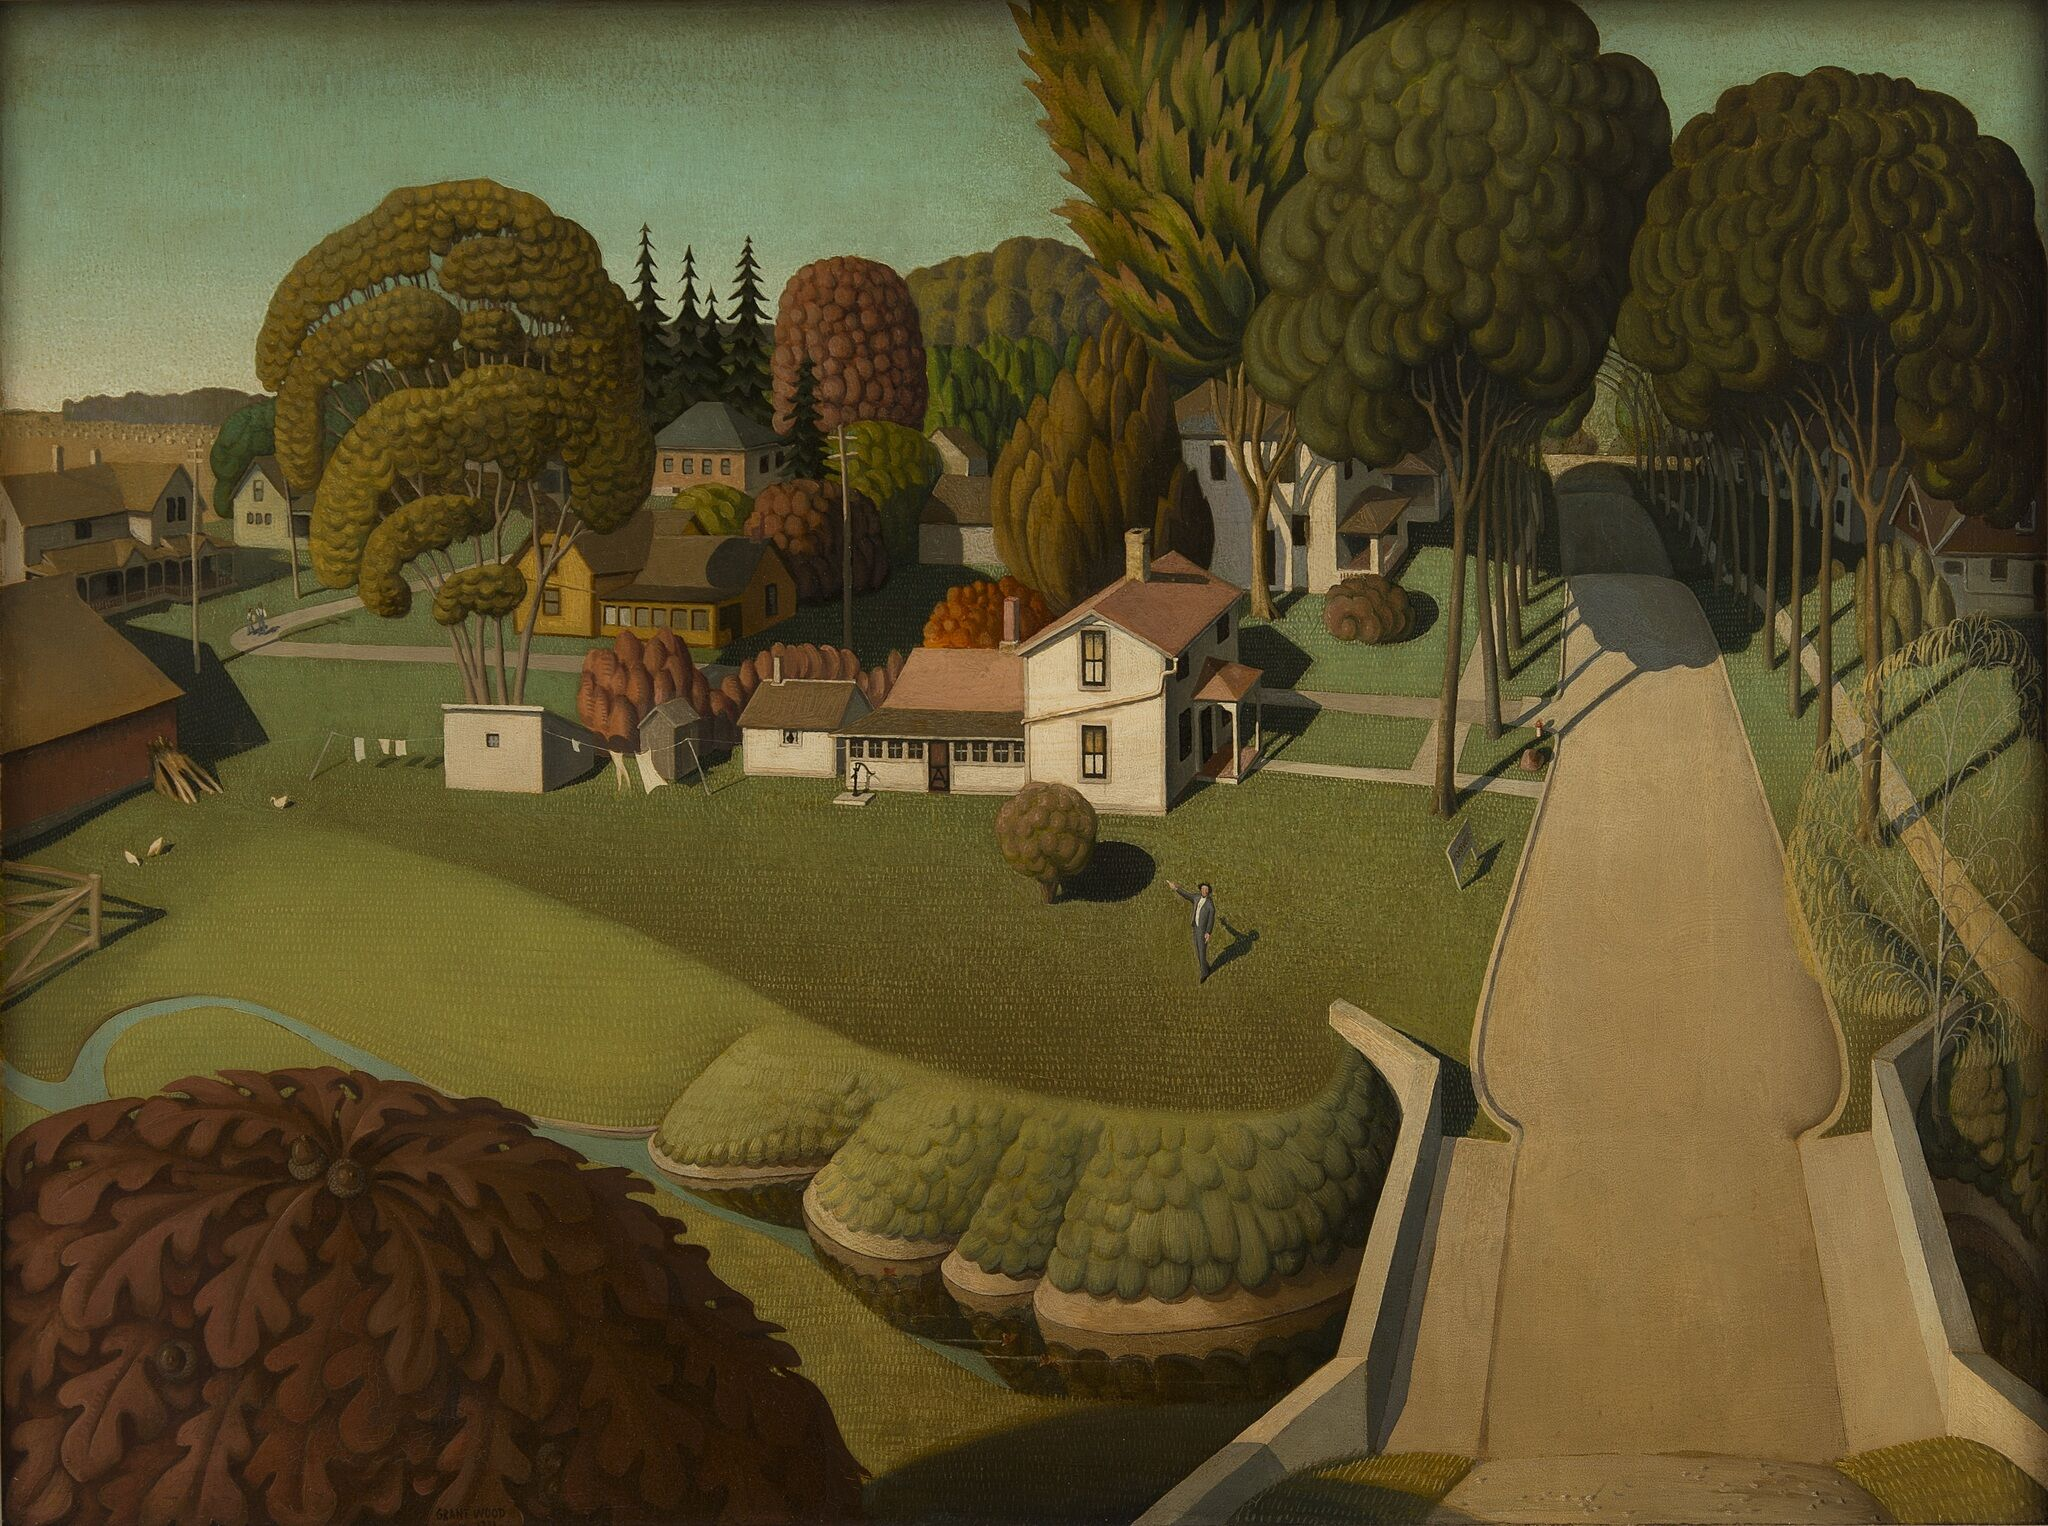 Aerial view painting of rural area with houses, a road lined with trees and a man walking below.